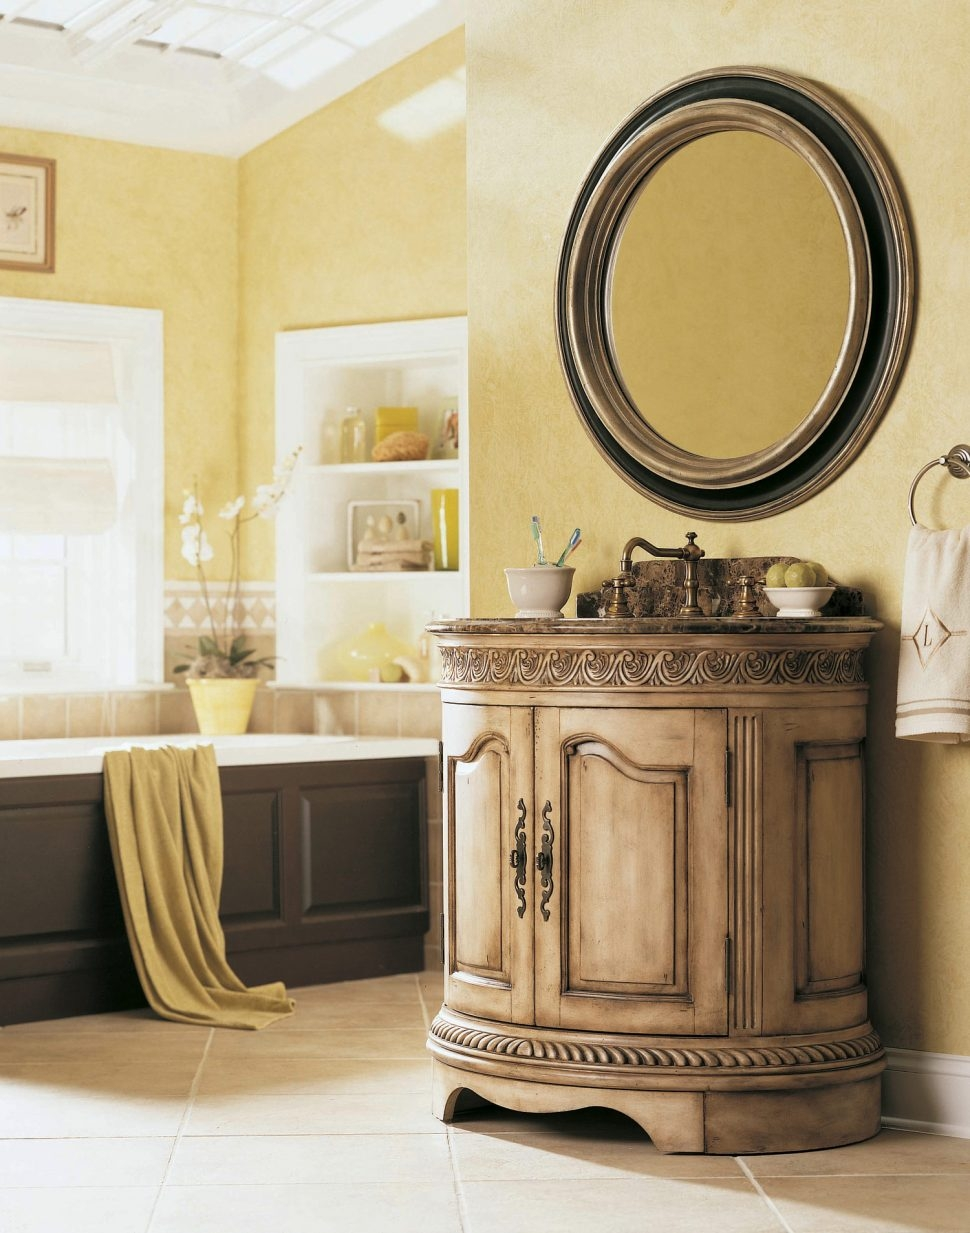 Bathroom Design Hooker Bathroom Furniture Pictures Shab Chic Pertaining To Shabby Chic Round Mirror (Image 2 of 15)